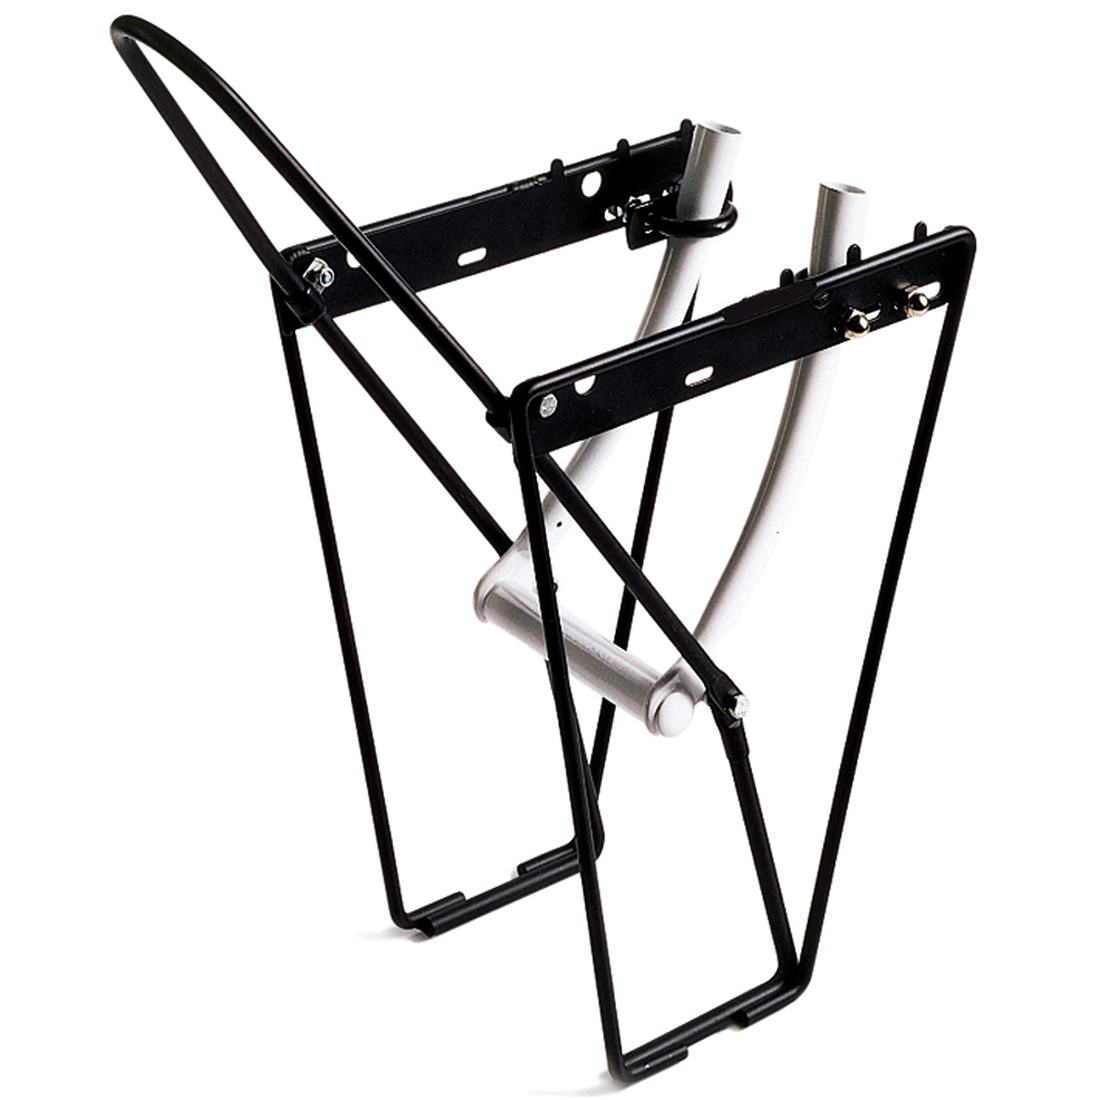 1100x1100 M Part Flrb Front Low Rider Rack With Mounting Brackets And Hoop